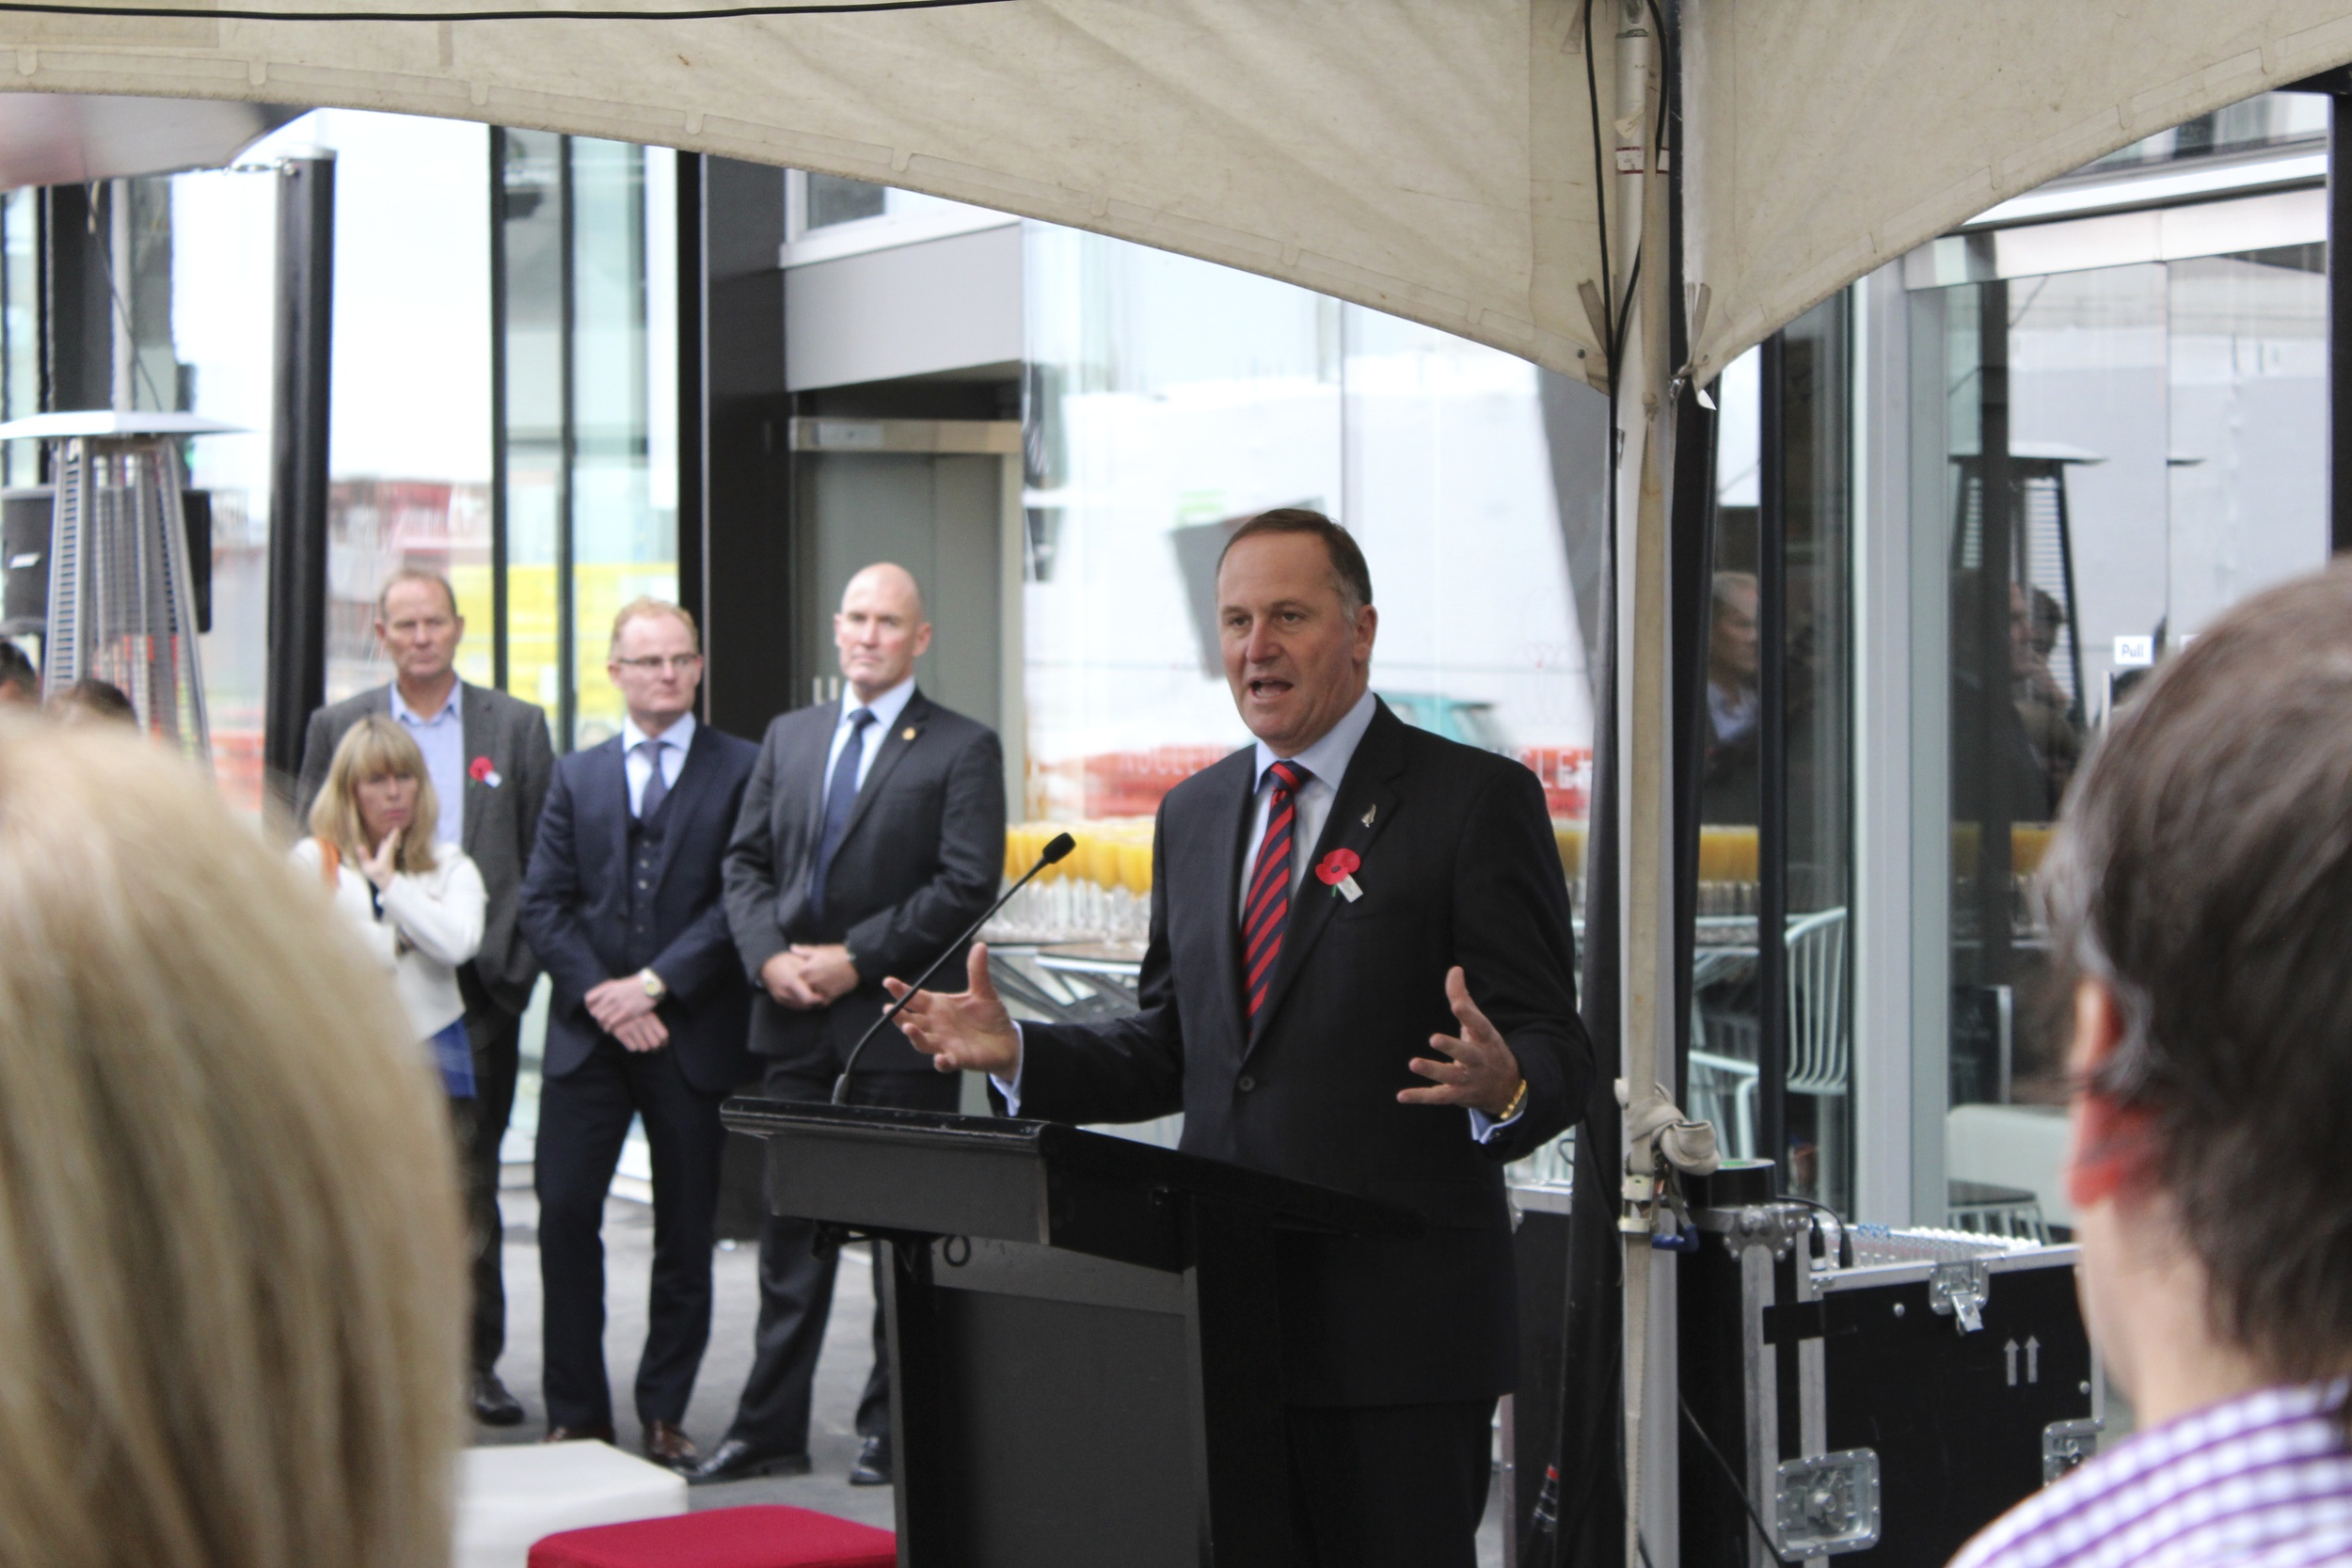 John Key spoke and cut the ribbon to open the new building.